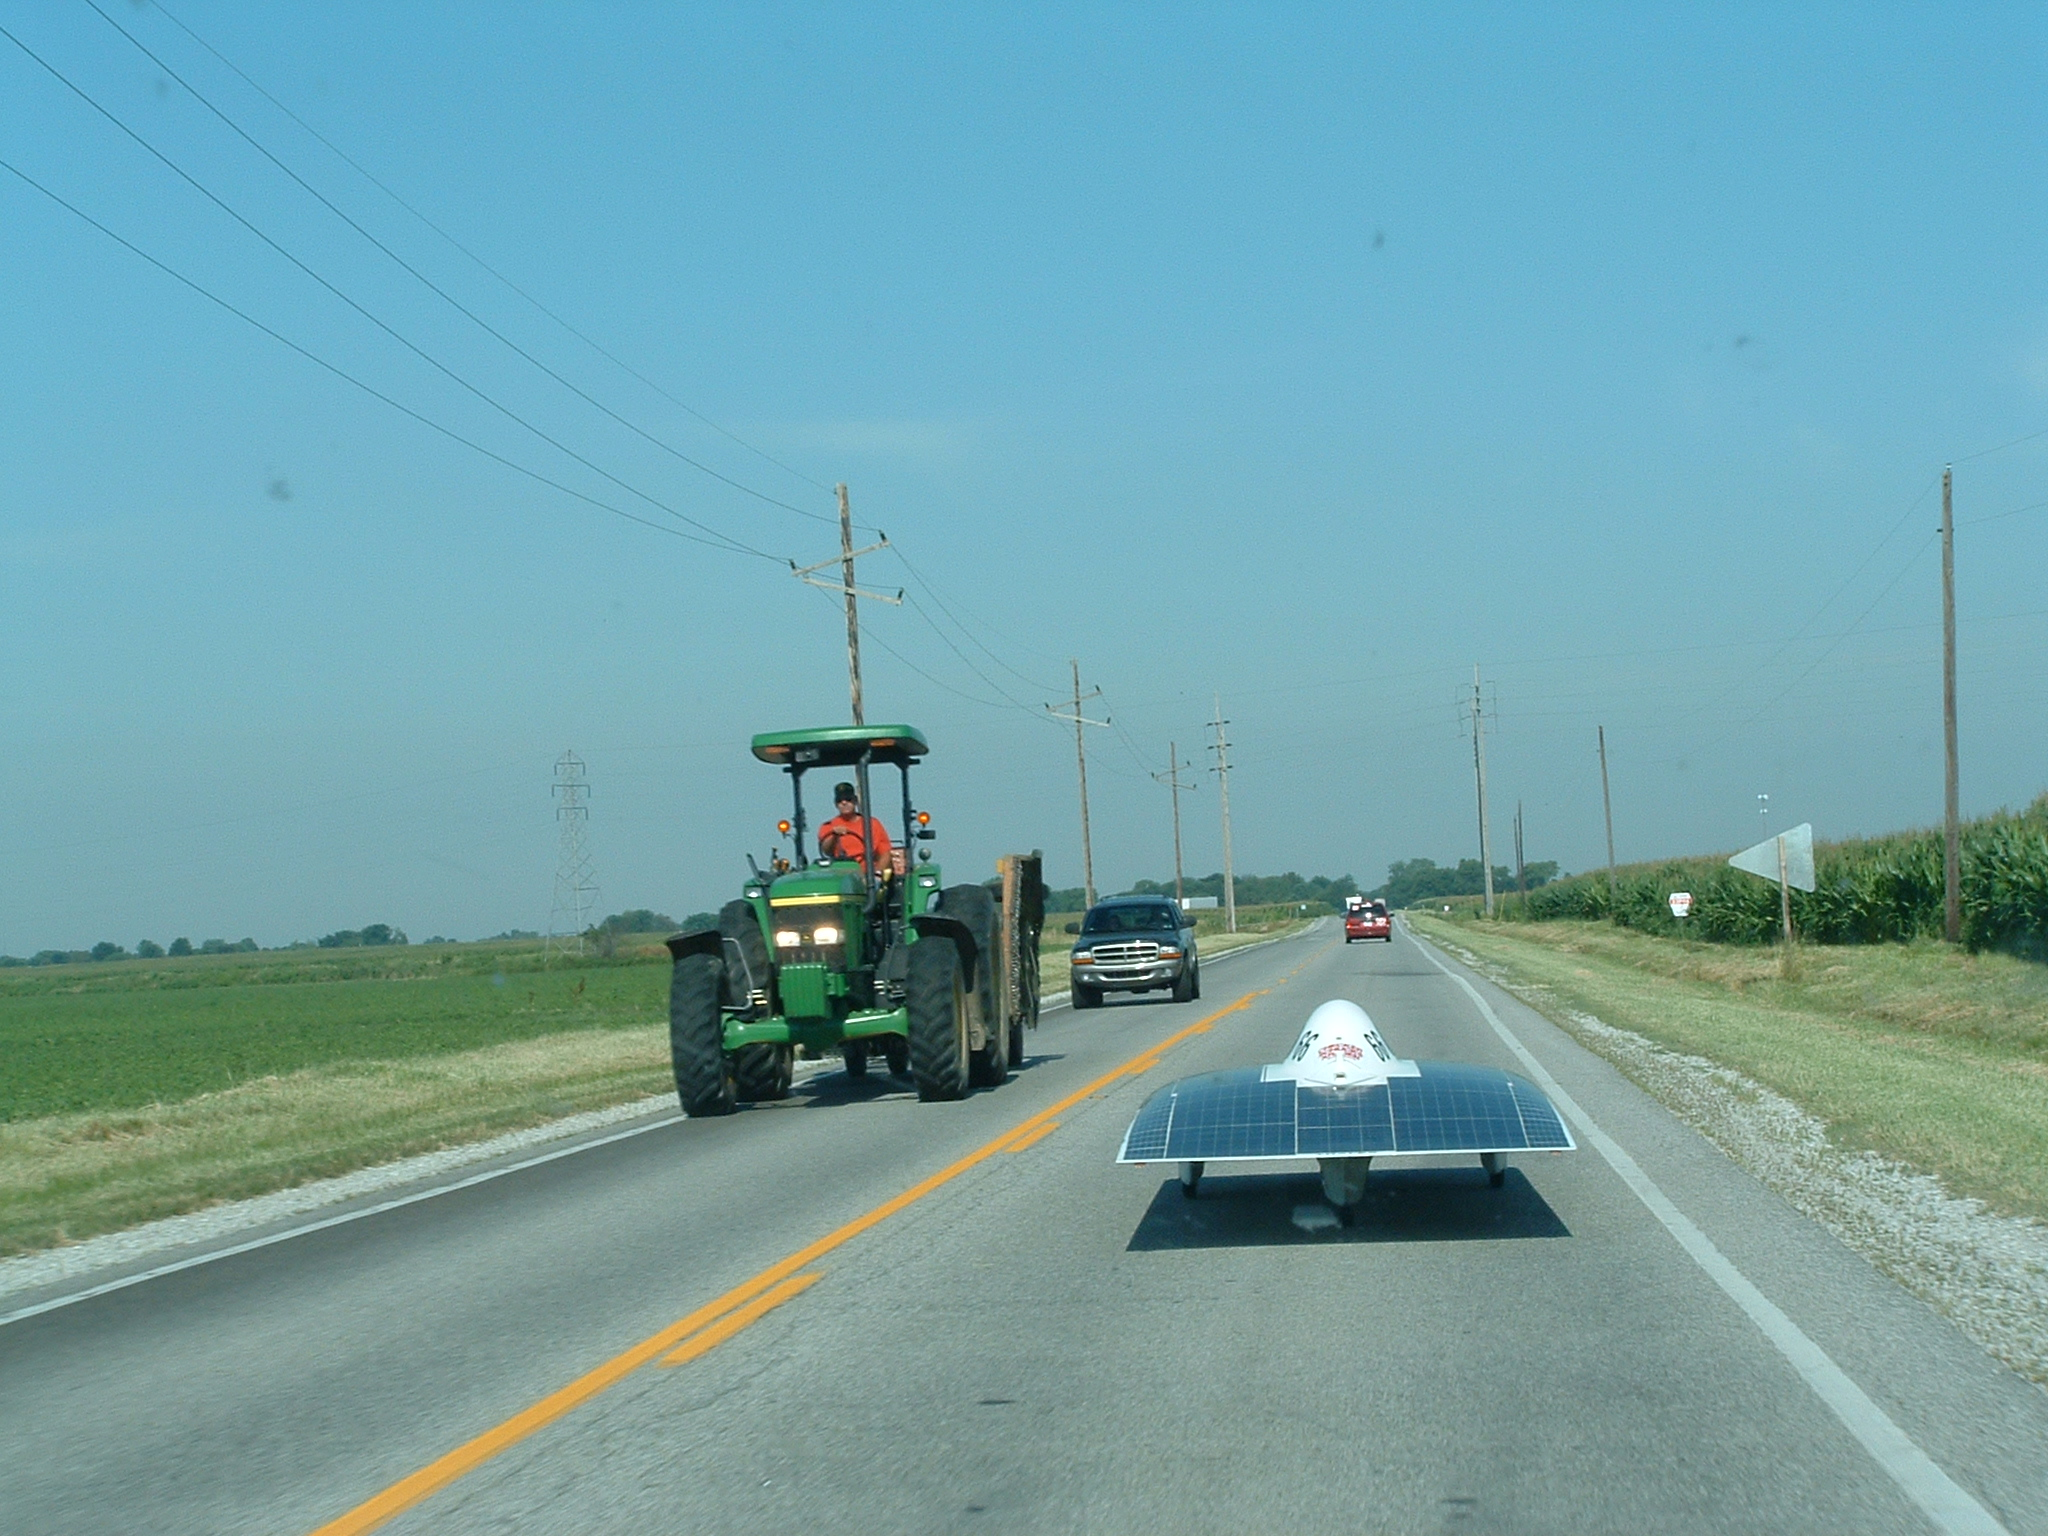 iSun snaking through farm country in the American Solar Challenge 2003.